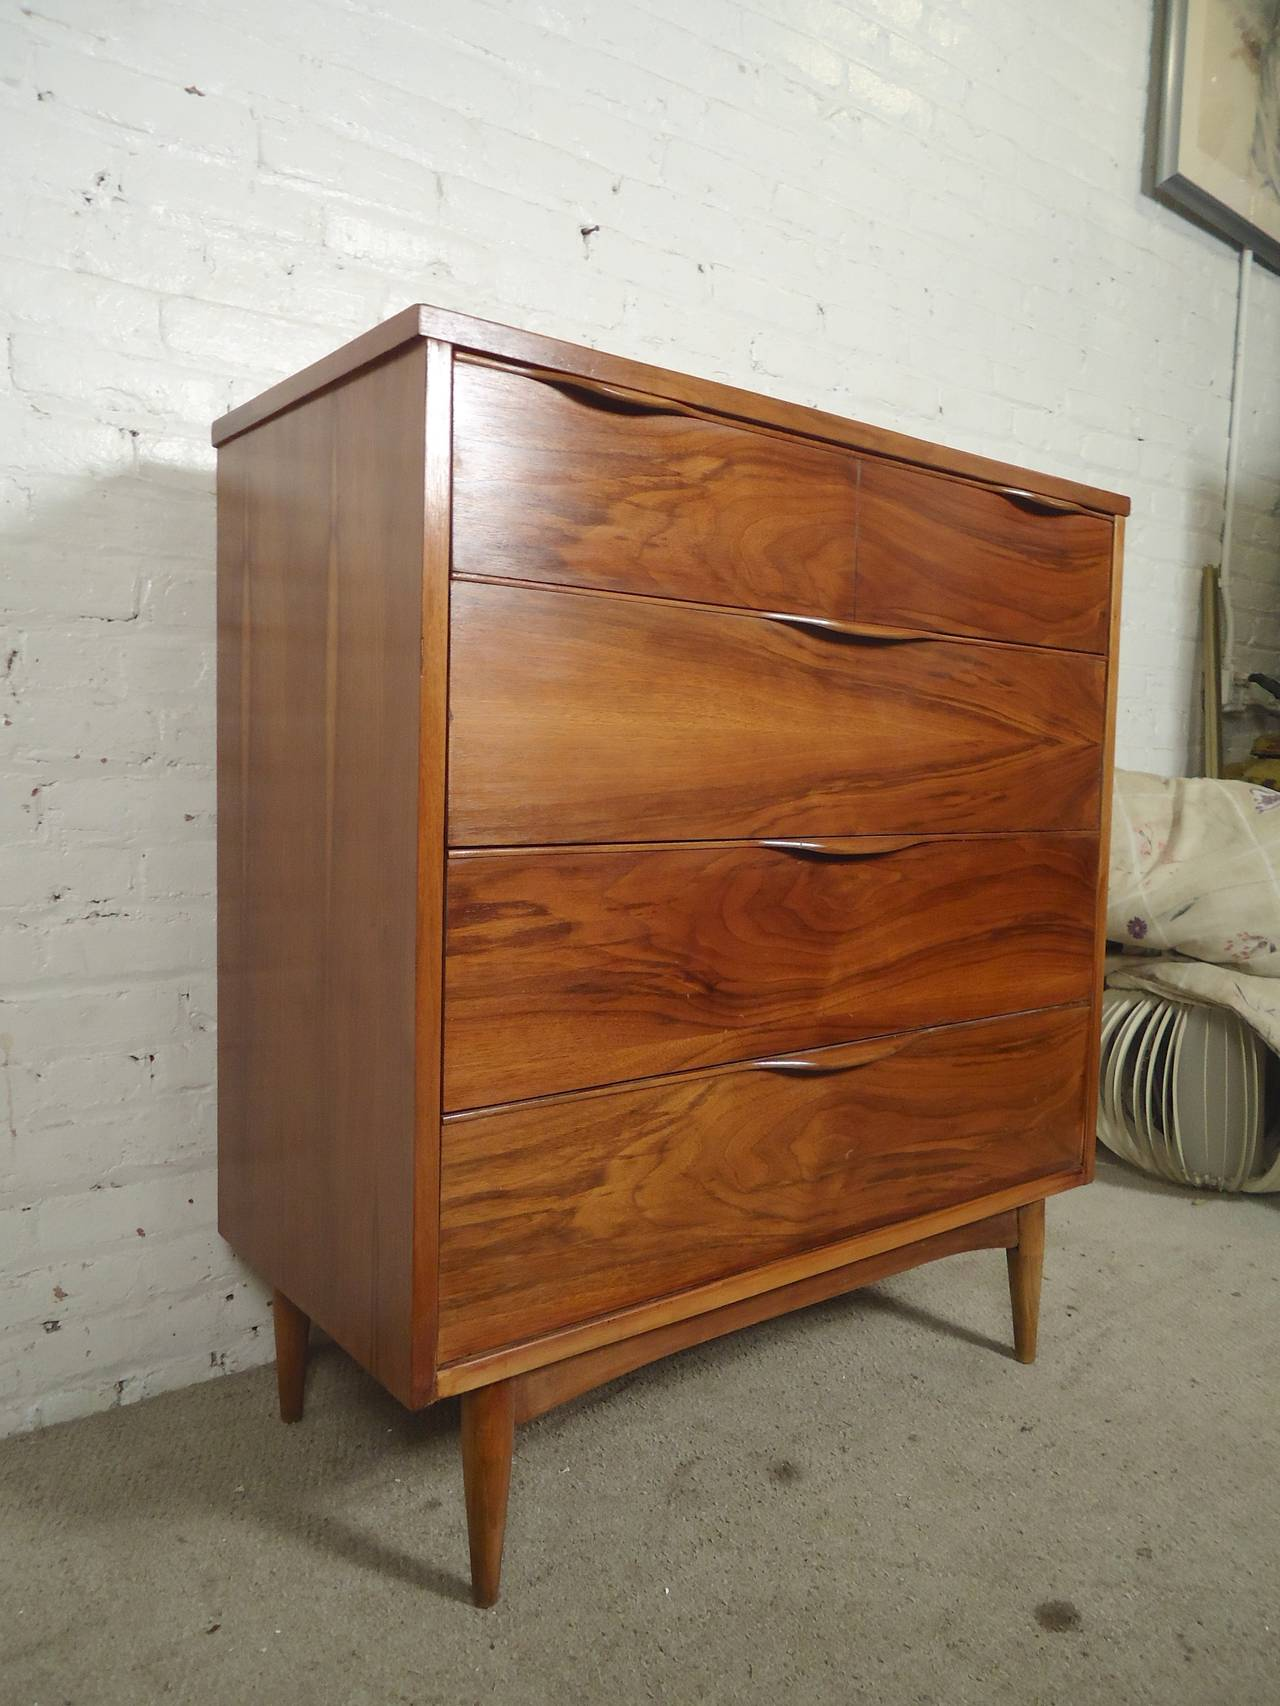 Unusual American Dresser With Curved Handles And Tapered Legs Four Wide Drawers Gorgeous Walnut Mid Century Modern Tall